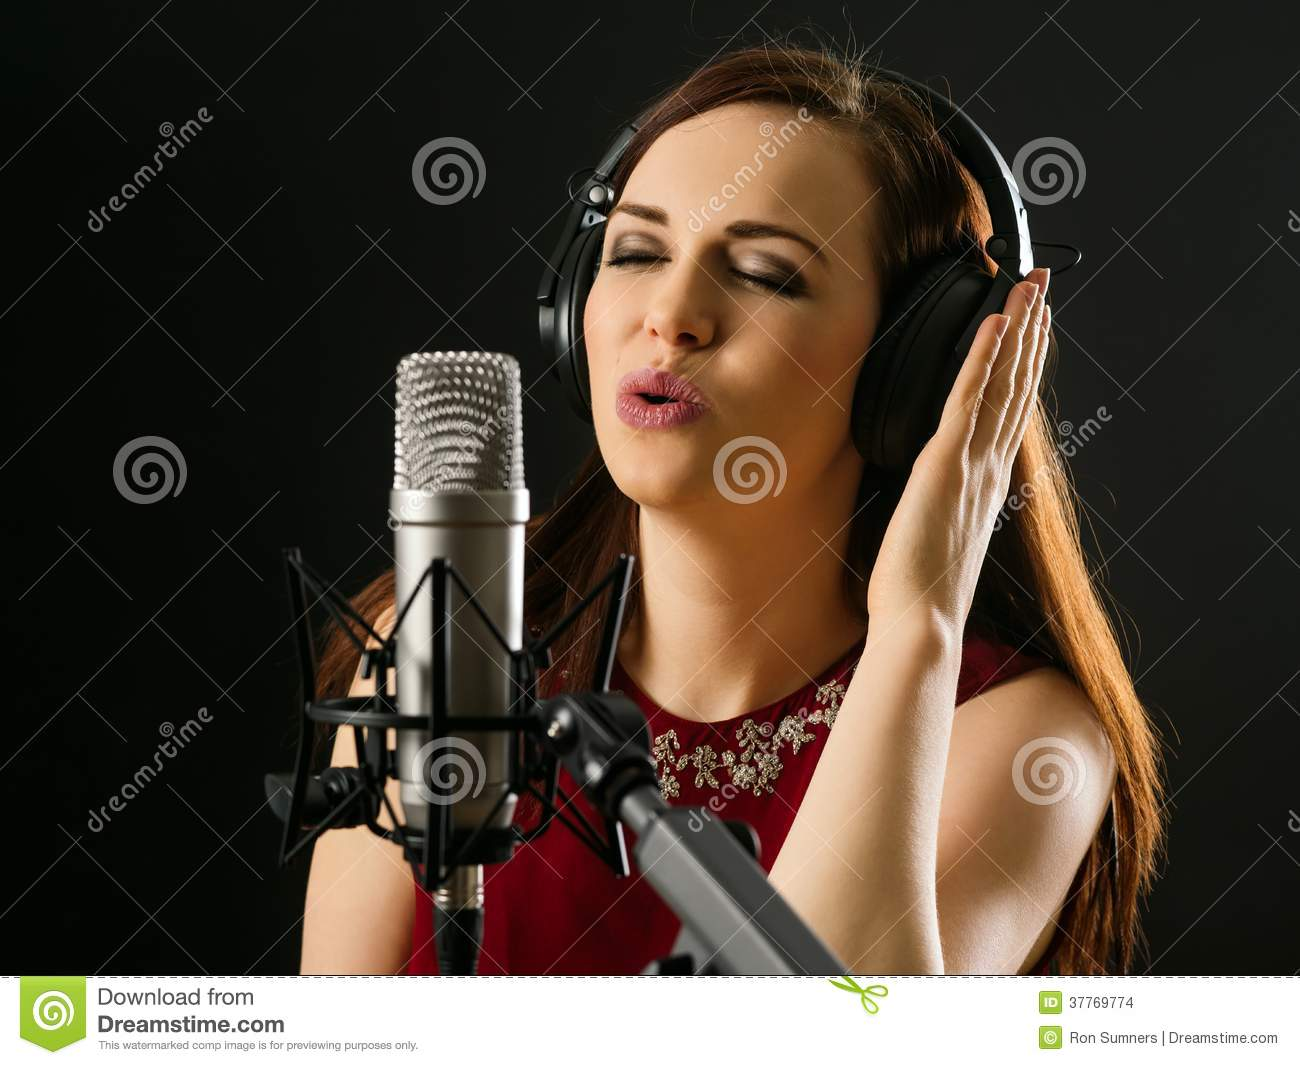 Singing into a studio microphone stock photo image of for A beautiful you at vesuvio salon studios